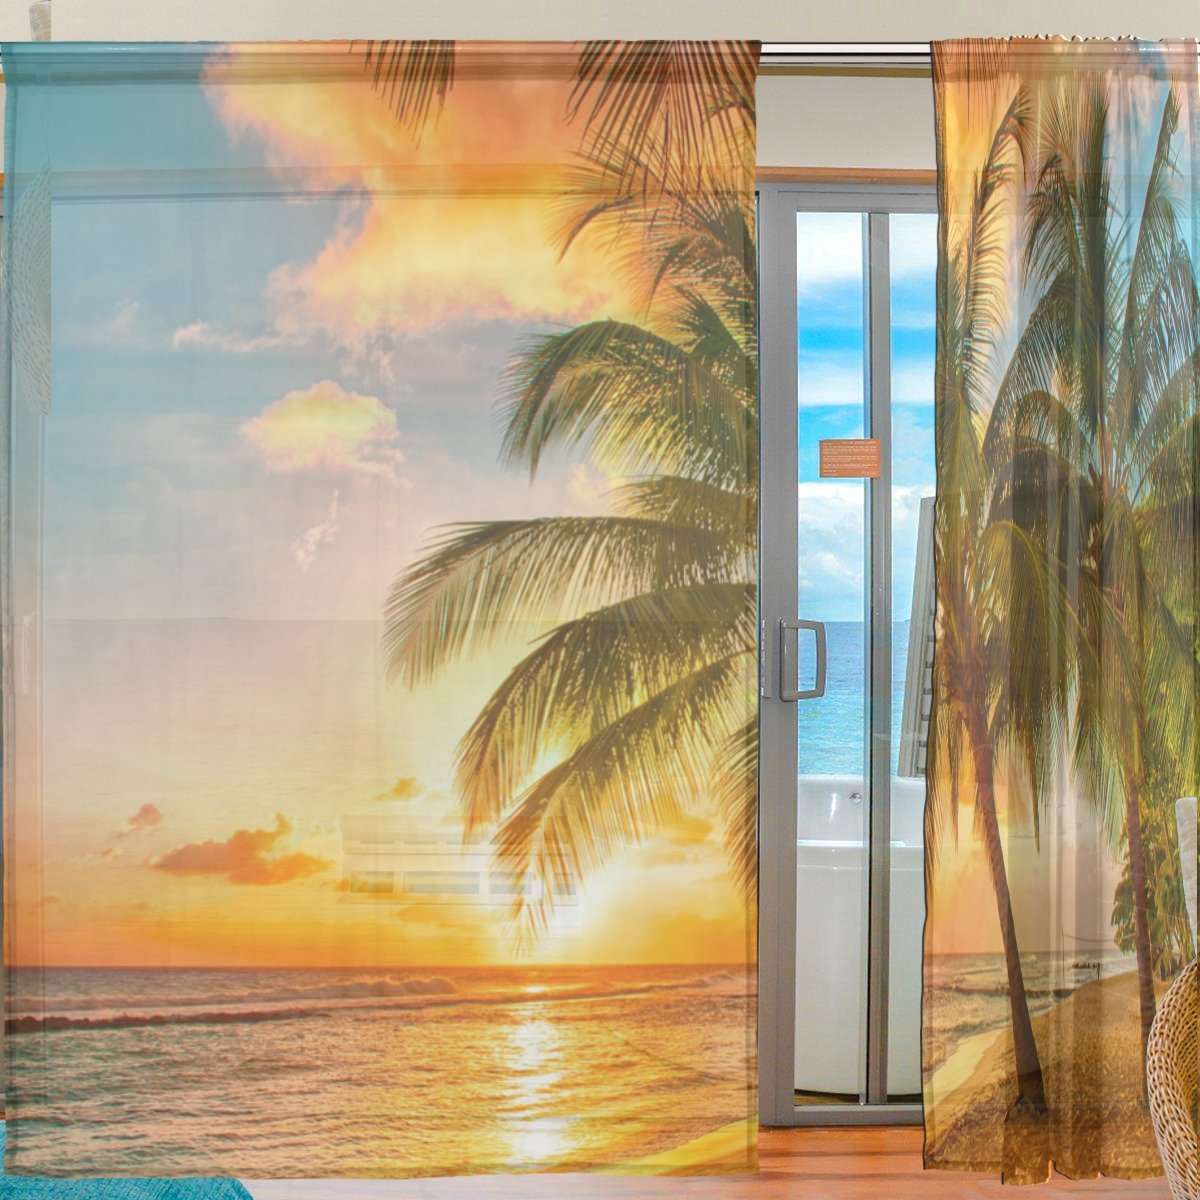 SEULIFE Window Sheer Curtain Hawaiian Tropical Beach Palm Tree Sunset Voile Curtain Drapes for Door Kitchen Living Room Bedroom 55x78 inches 2 Panels